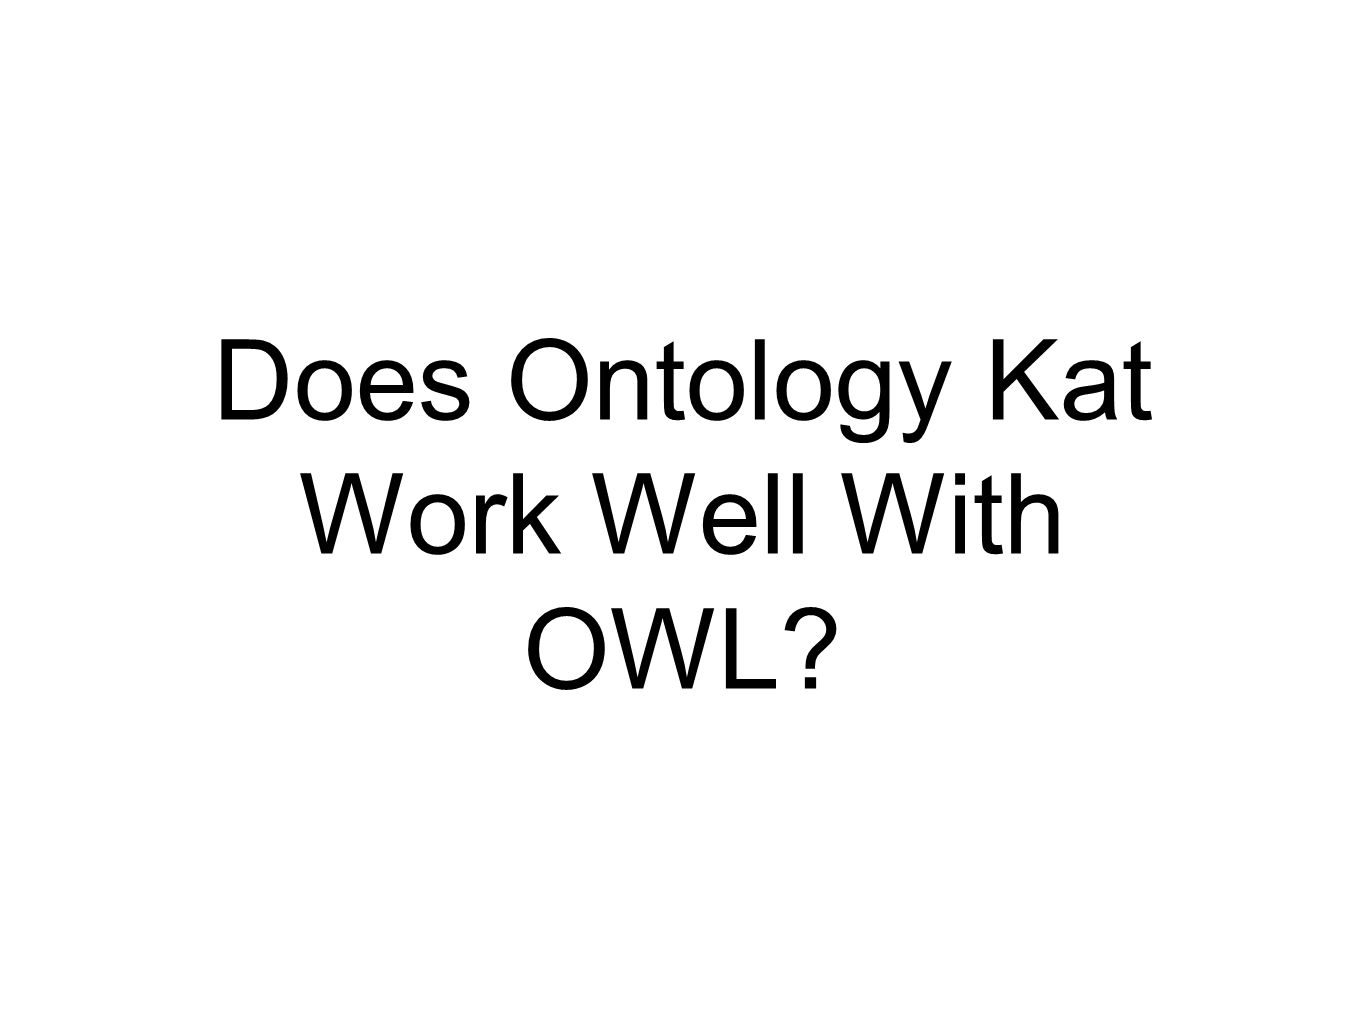 Does Ontology Kat Work Well With OWL